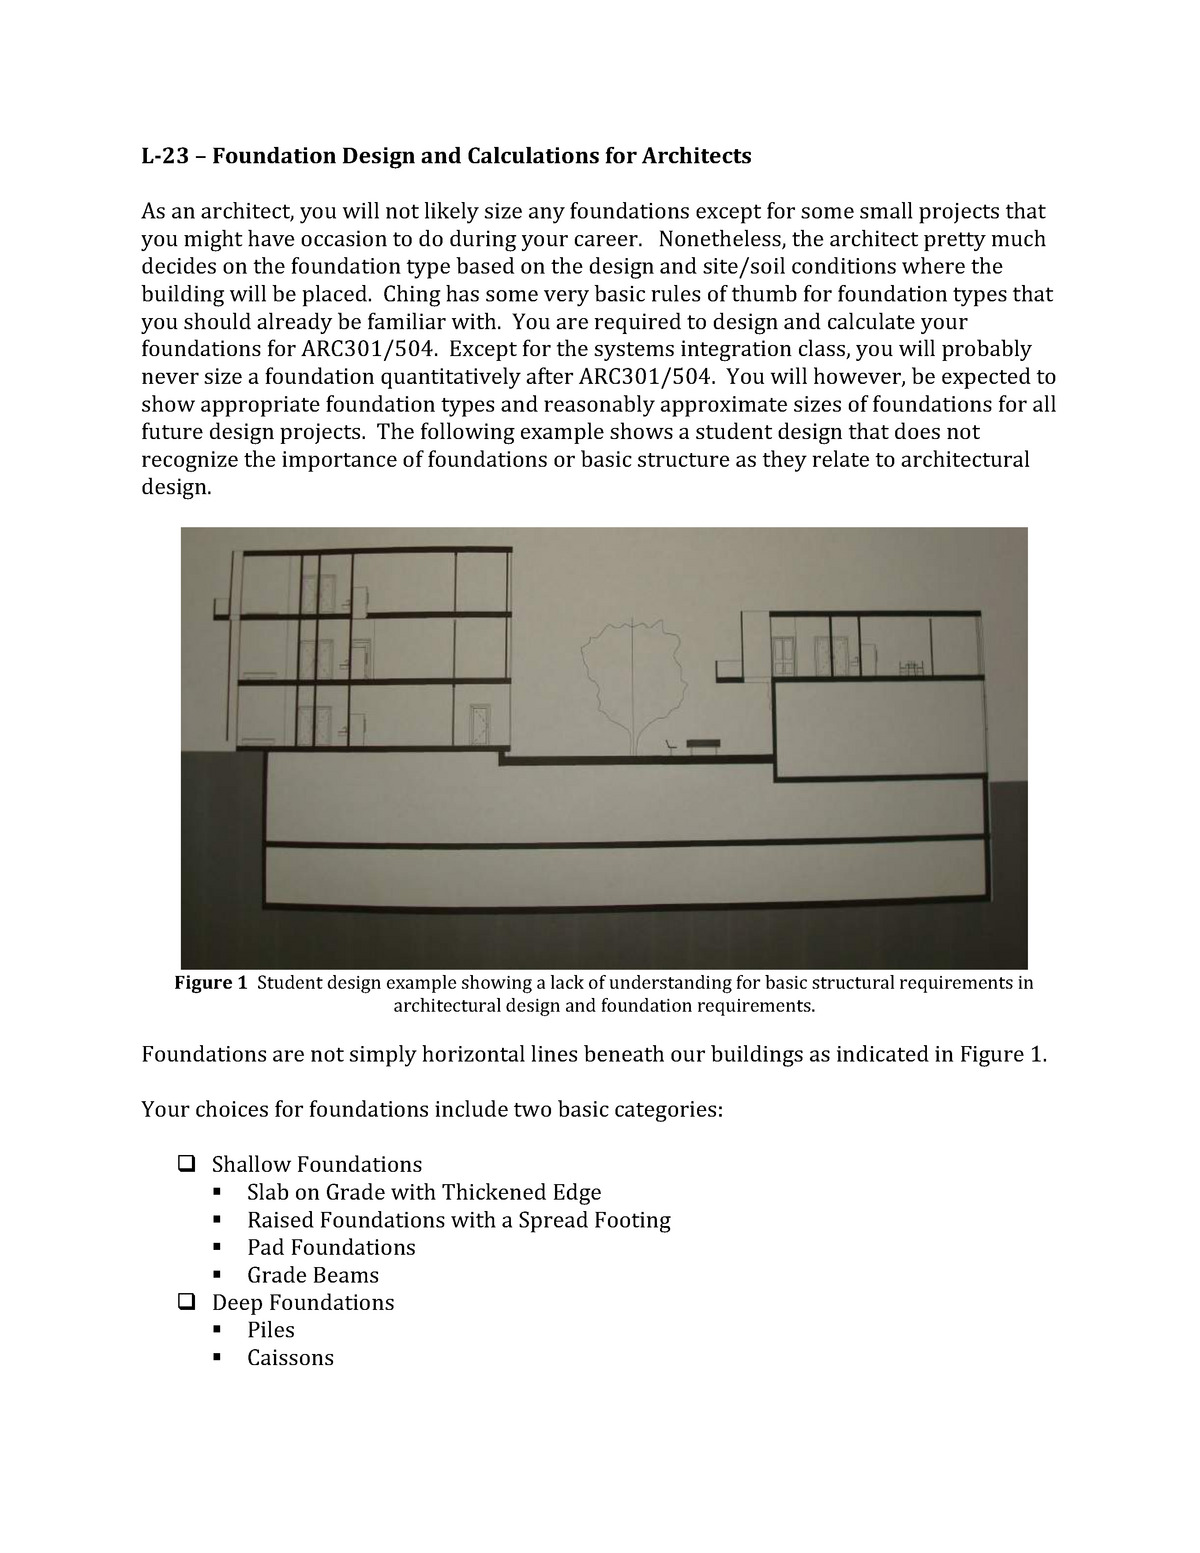 Foundation Design and Calculations for Architects - StuDocu